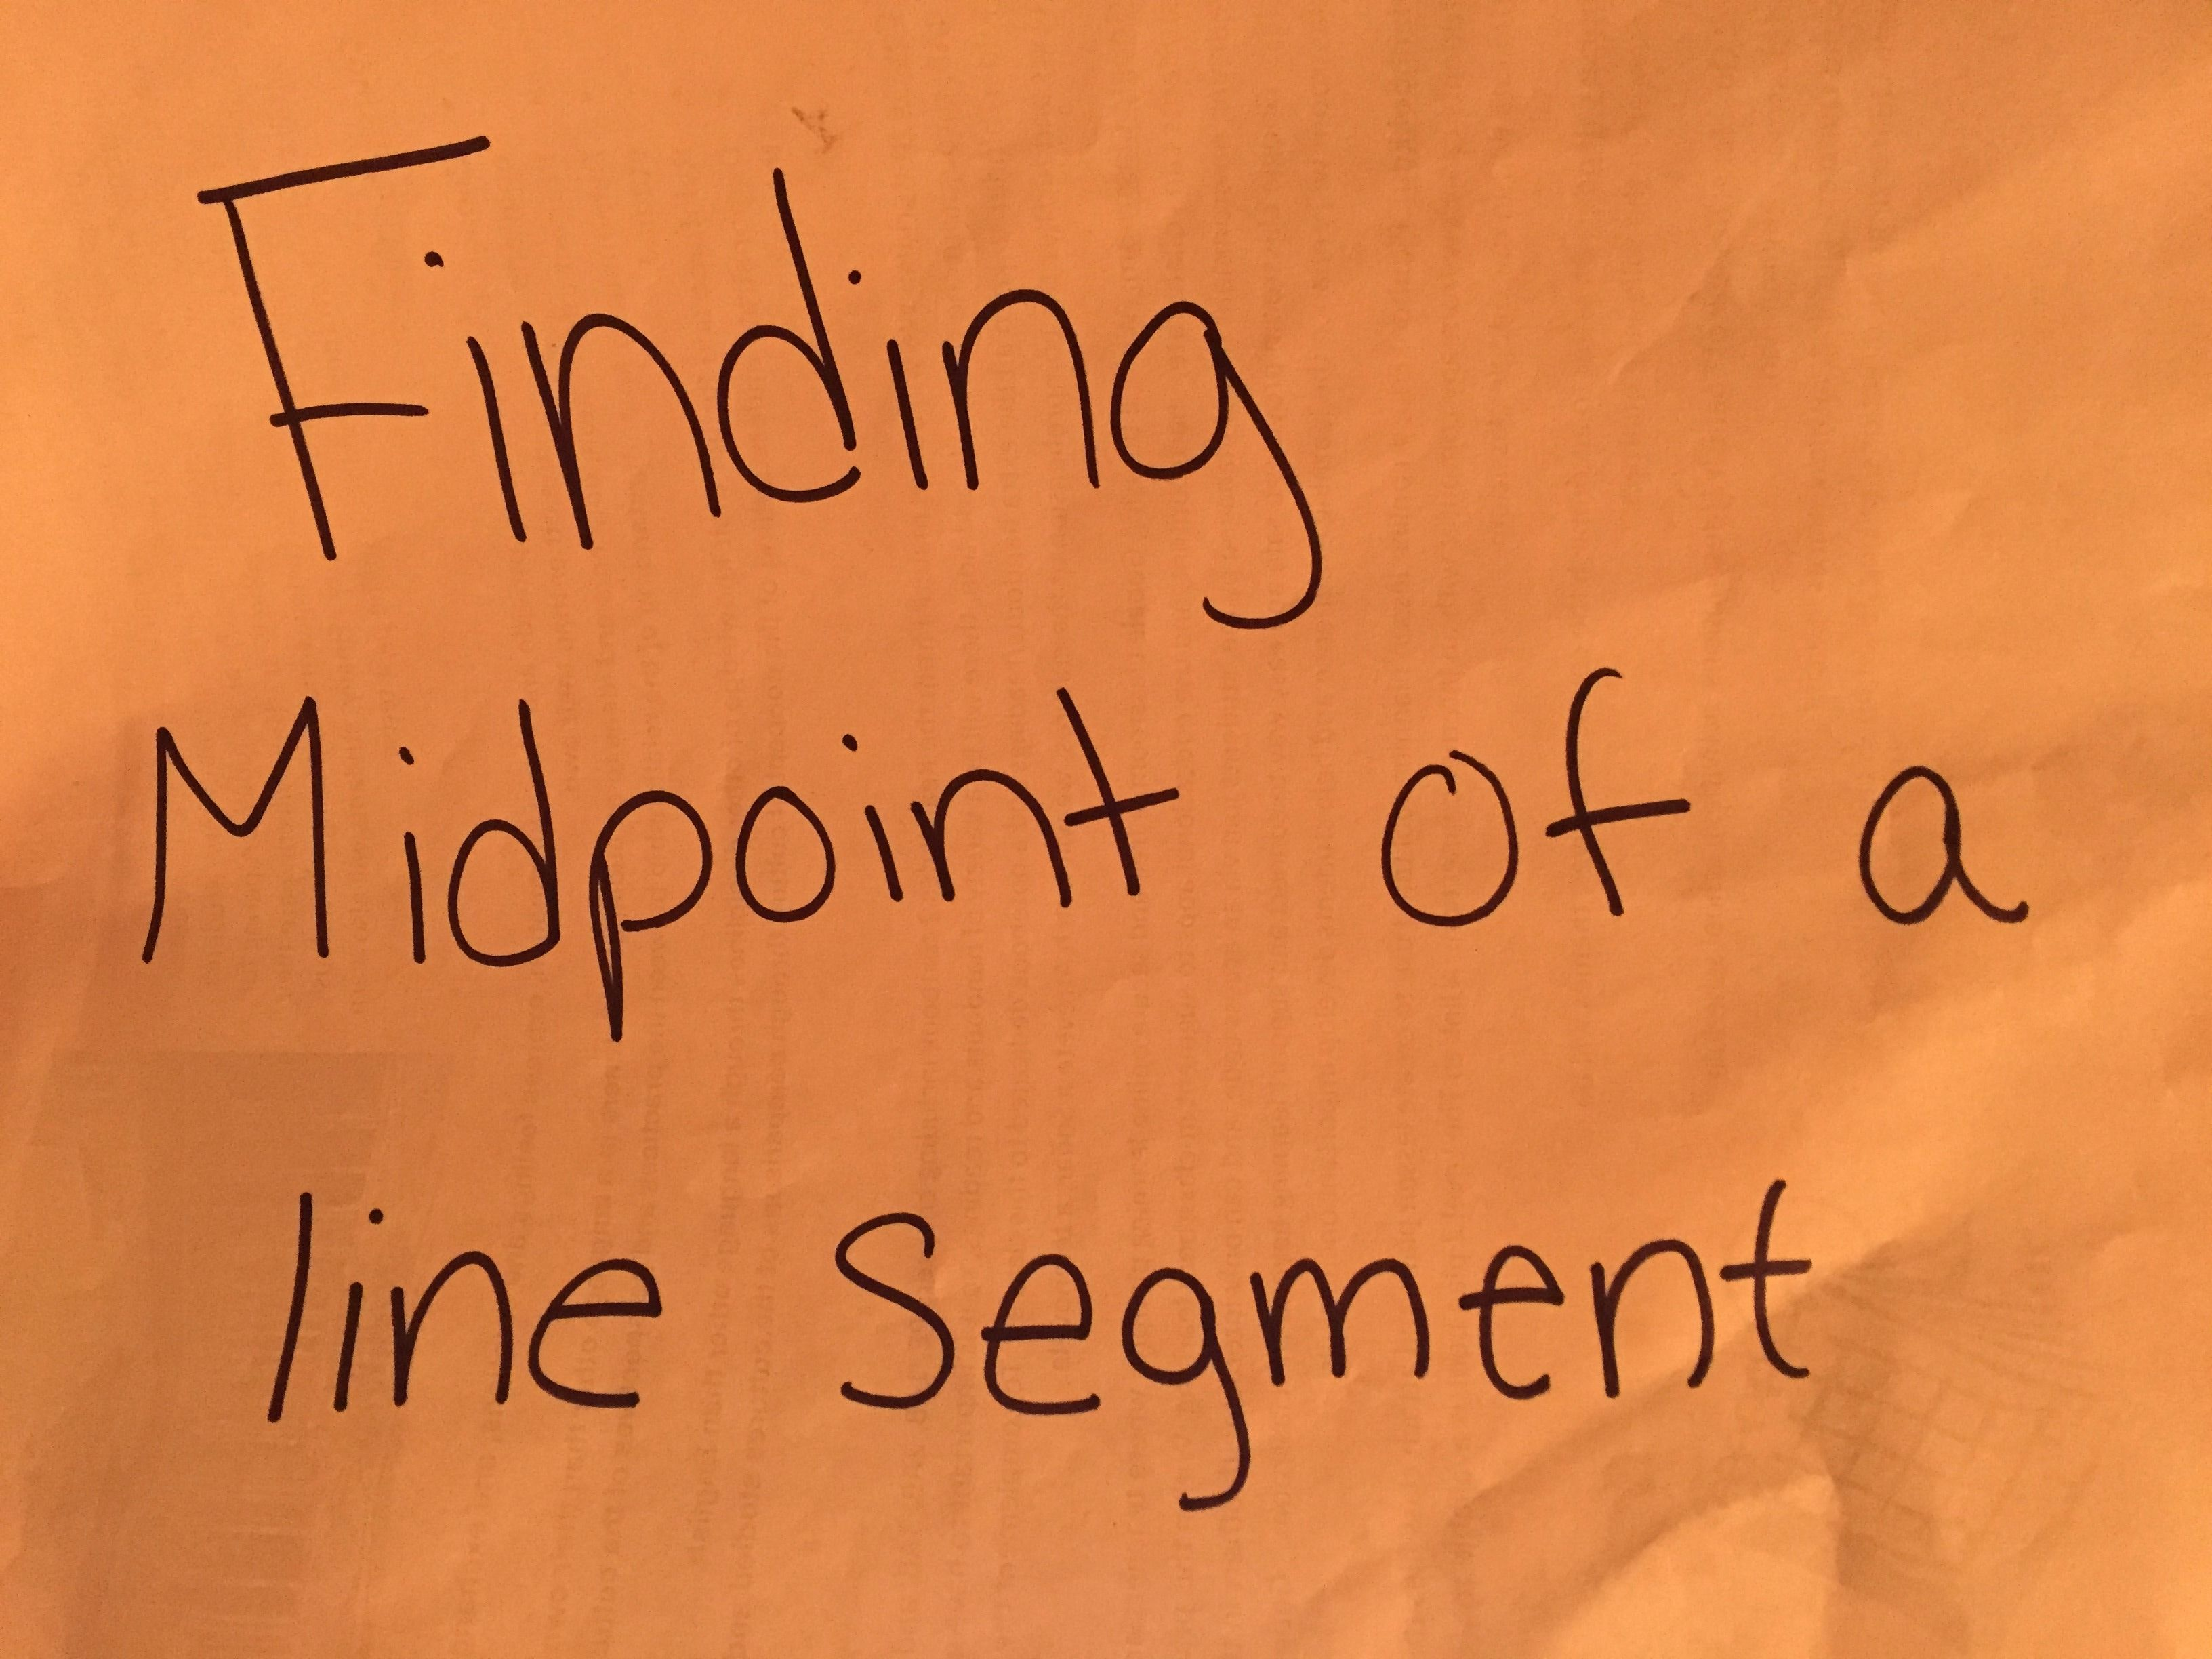 Picture of Finding Midpoint of a Line Segment